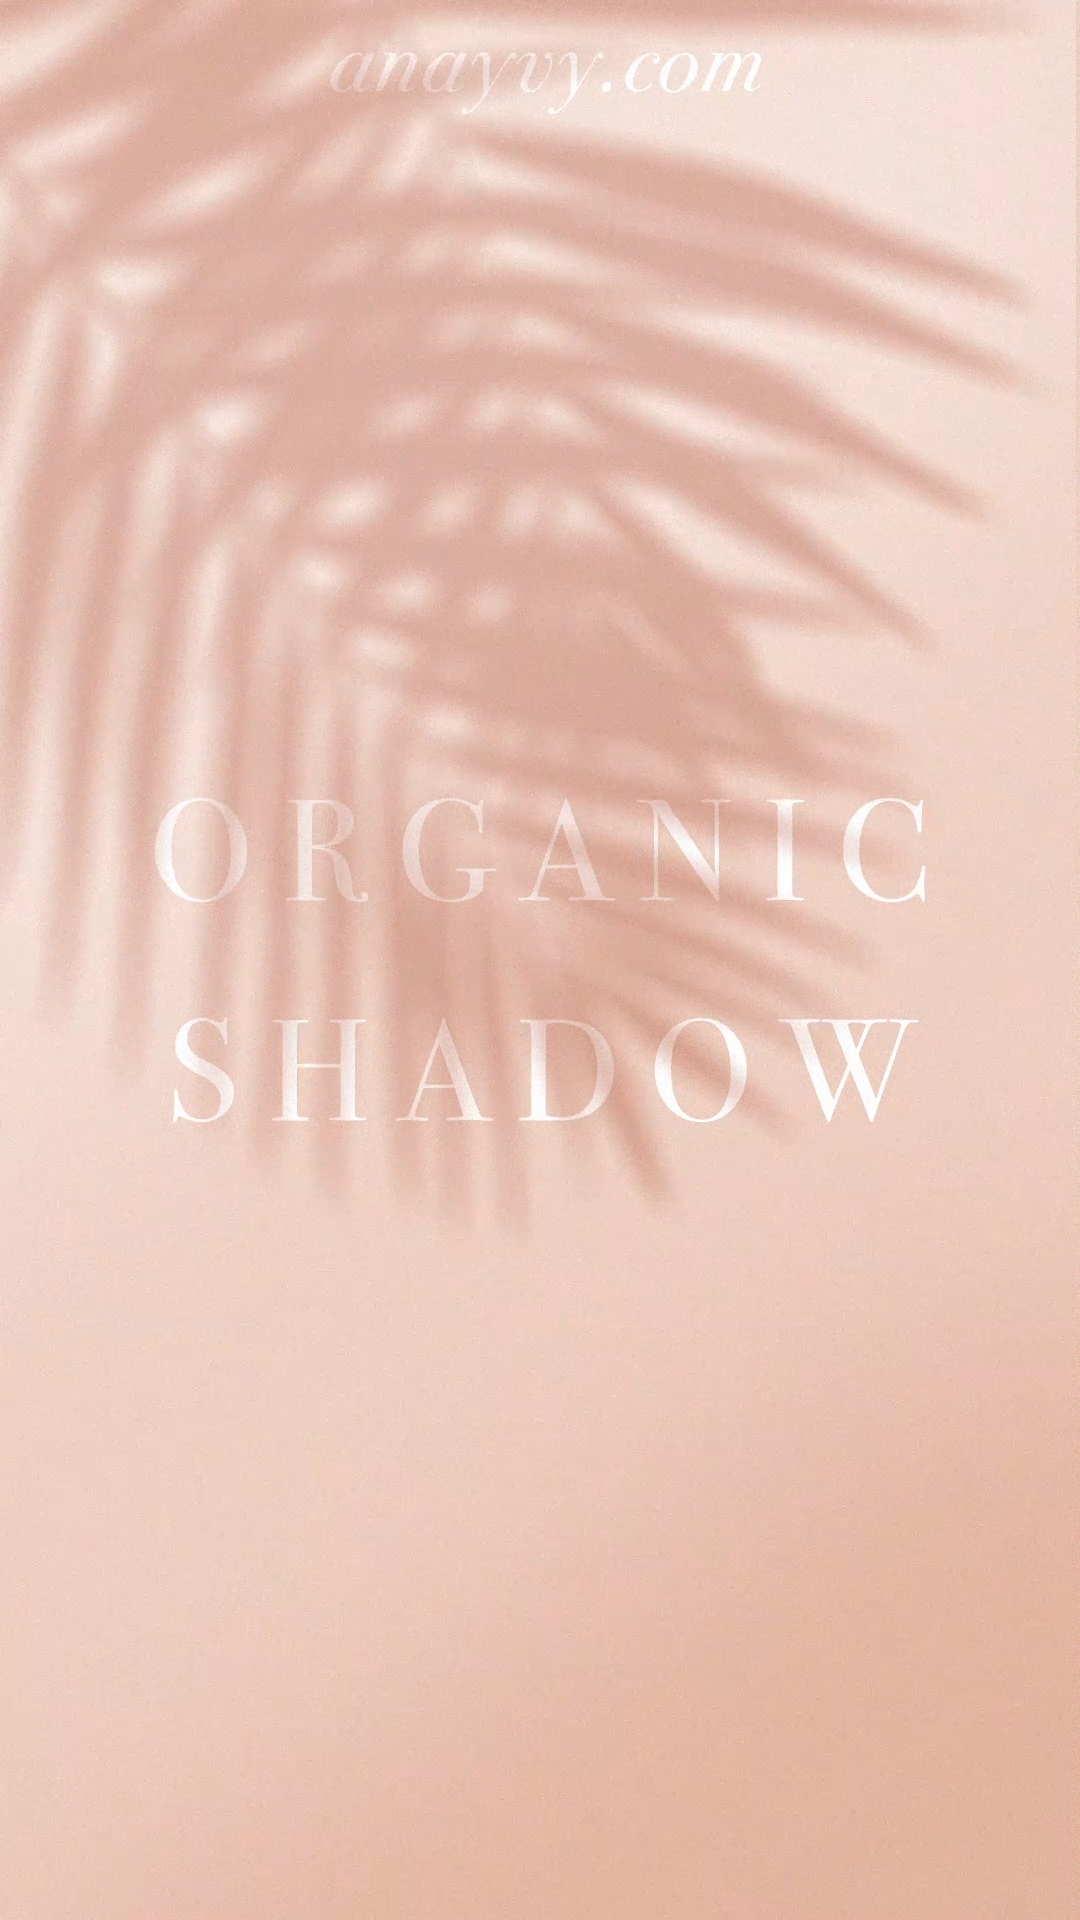 Realistic & natural moving shadows of palm leaves & animated palm leaves for your next design project - Create amazing tropical videos and outstanding compositions. Realistic movement overlays create natural sunlight & shadow look. Perfect for your next instagram, youtube or pinterest.   #greenery #palm #palmleaf #palmleaves #animation #branding #leaves #leaf #urbanjungle #jungle #shadow #shadowoverlay #designtrend2019 #monstera #minimalistic Music @soulfulxnature Soft Drive via @hellothematic